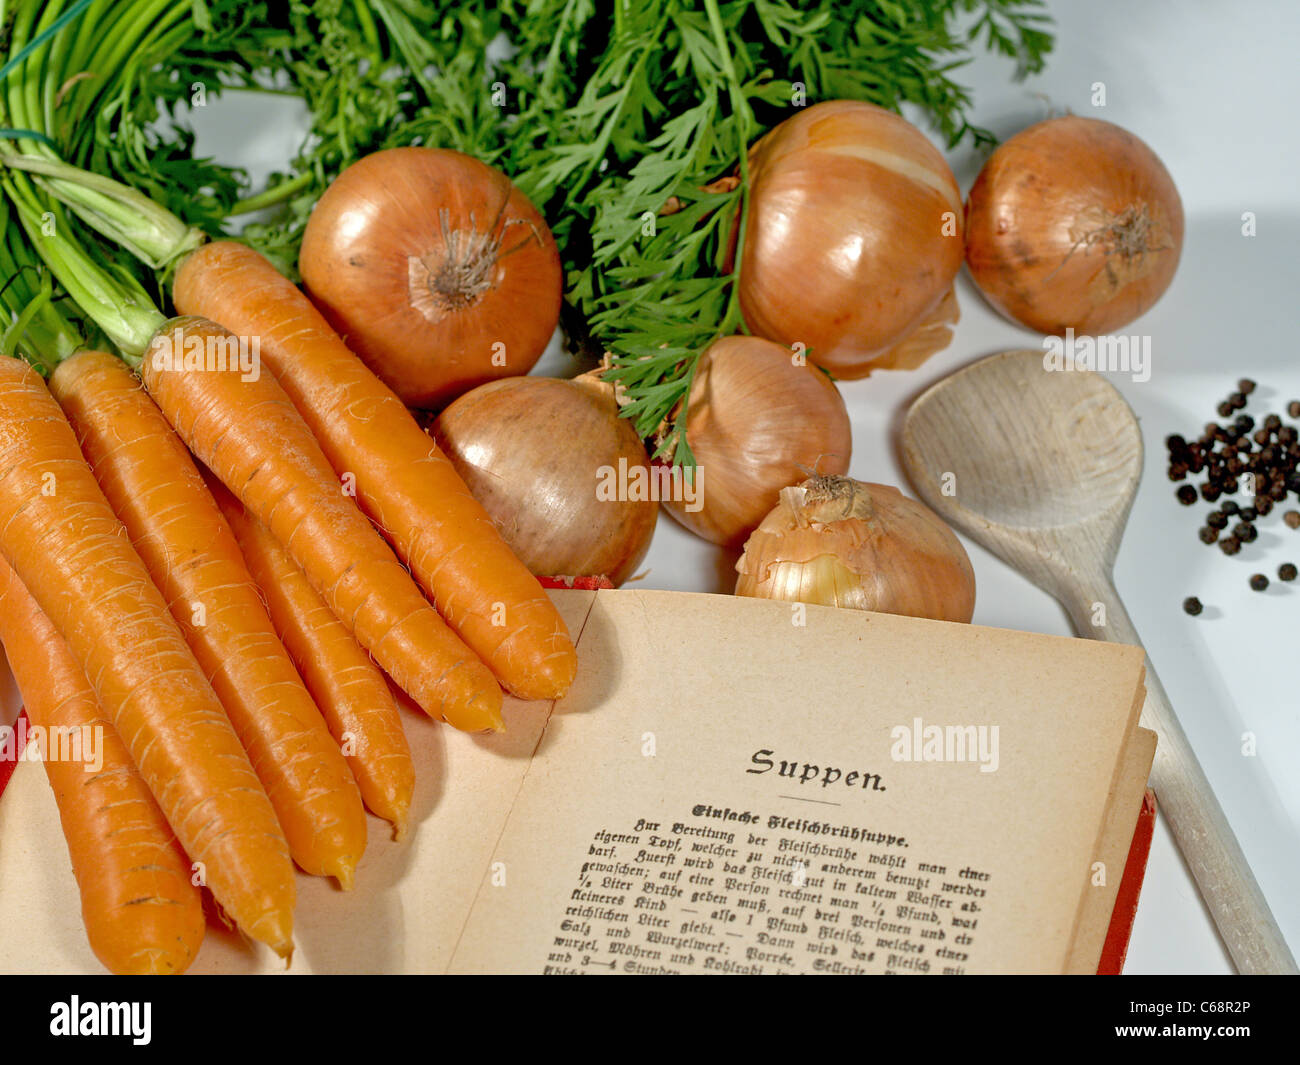 an old German cookbook side by side with carrots, onions and peppercorns and a wooden spoon - Stock Image